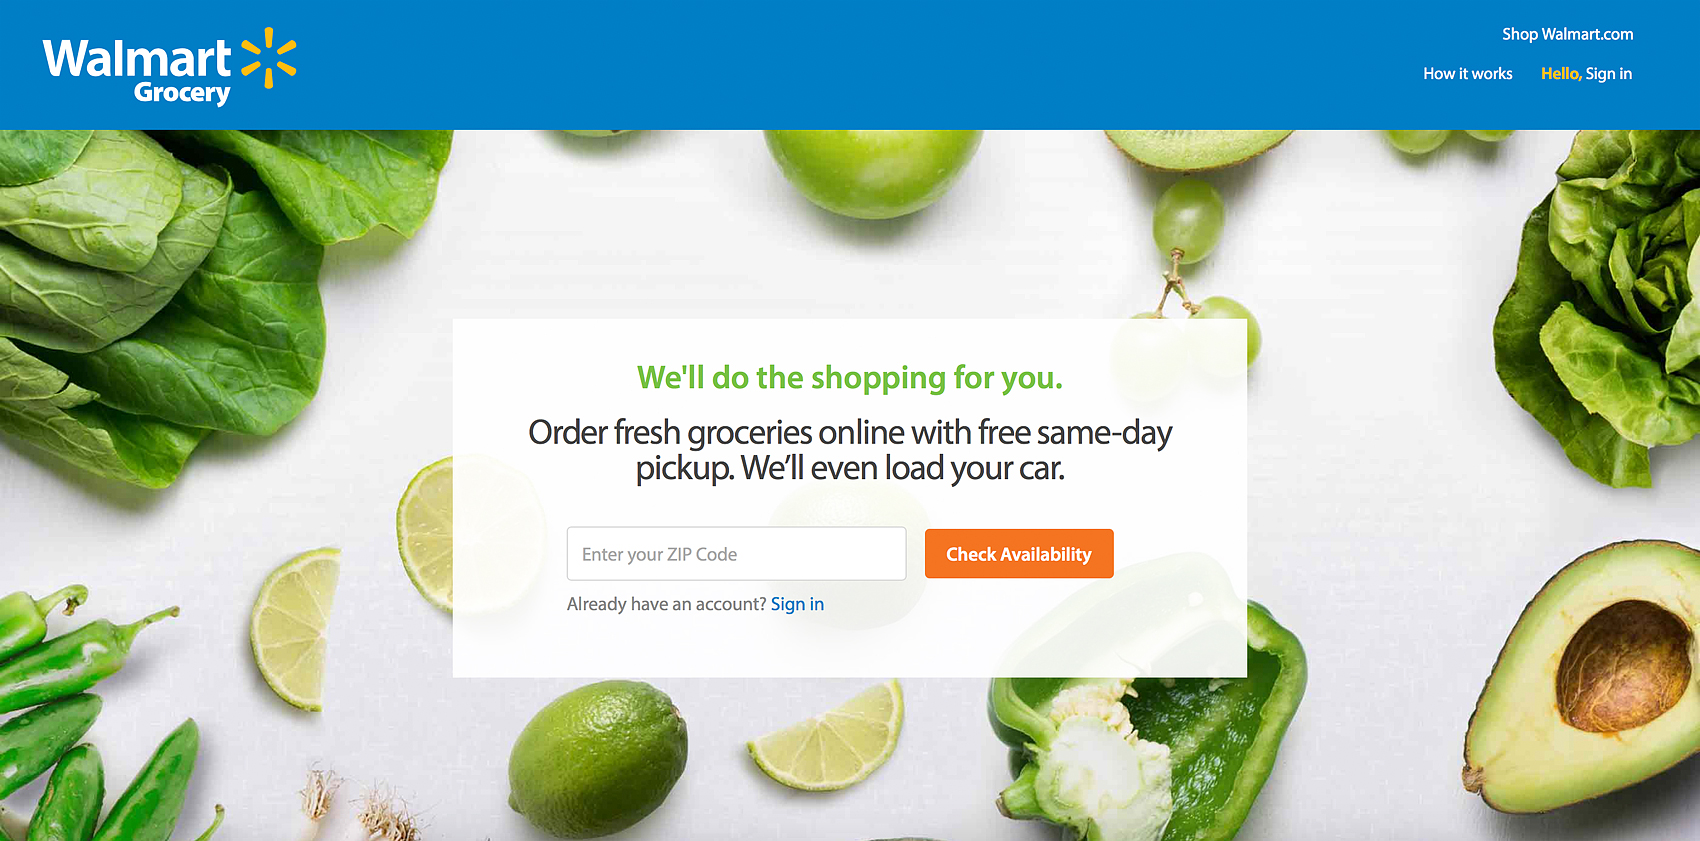 Walmart Grocery Website